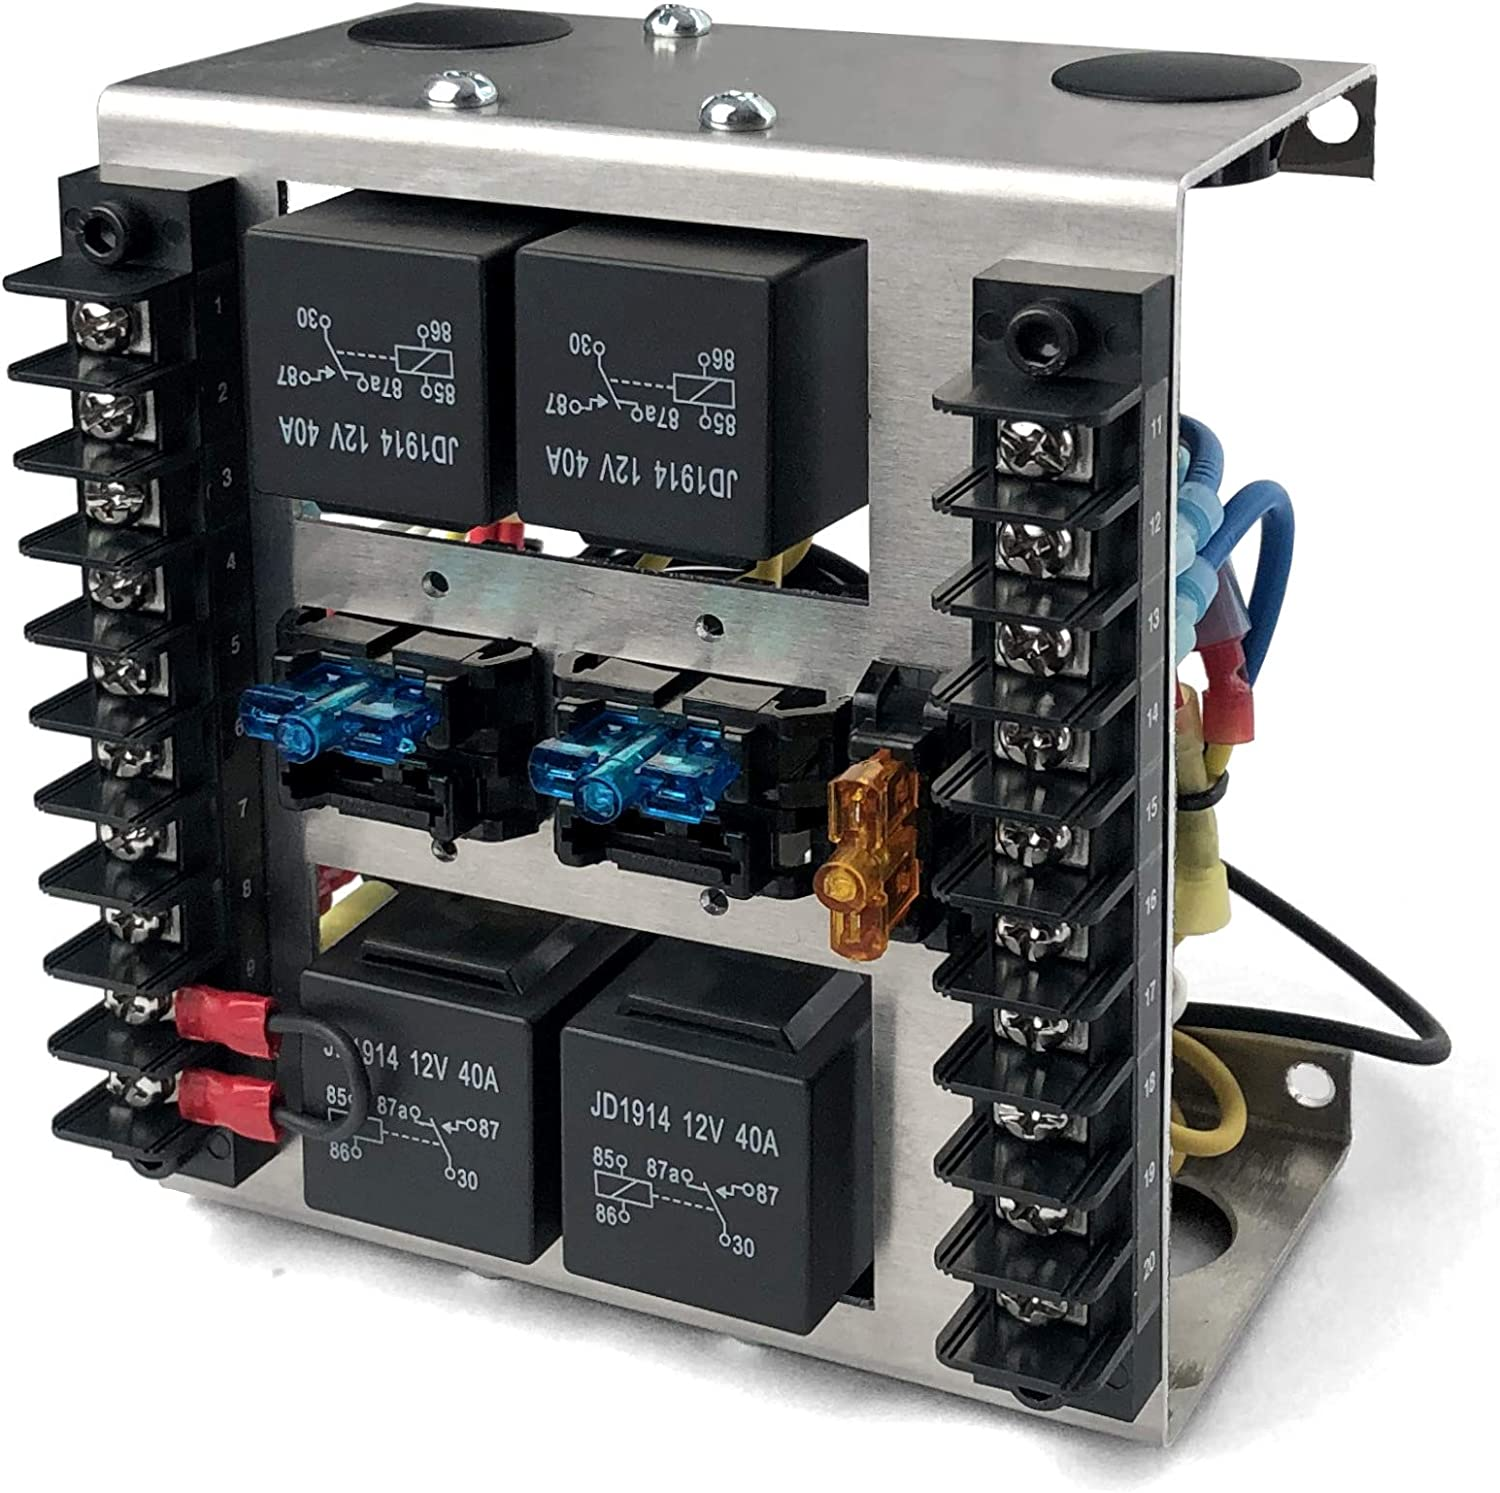 MGI SpeedWare 4 Relay Box with Fuses Custom security Built-In New arrival for C 12vDC